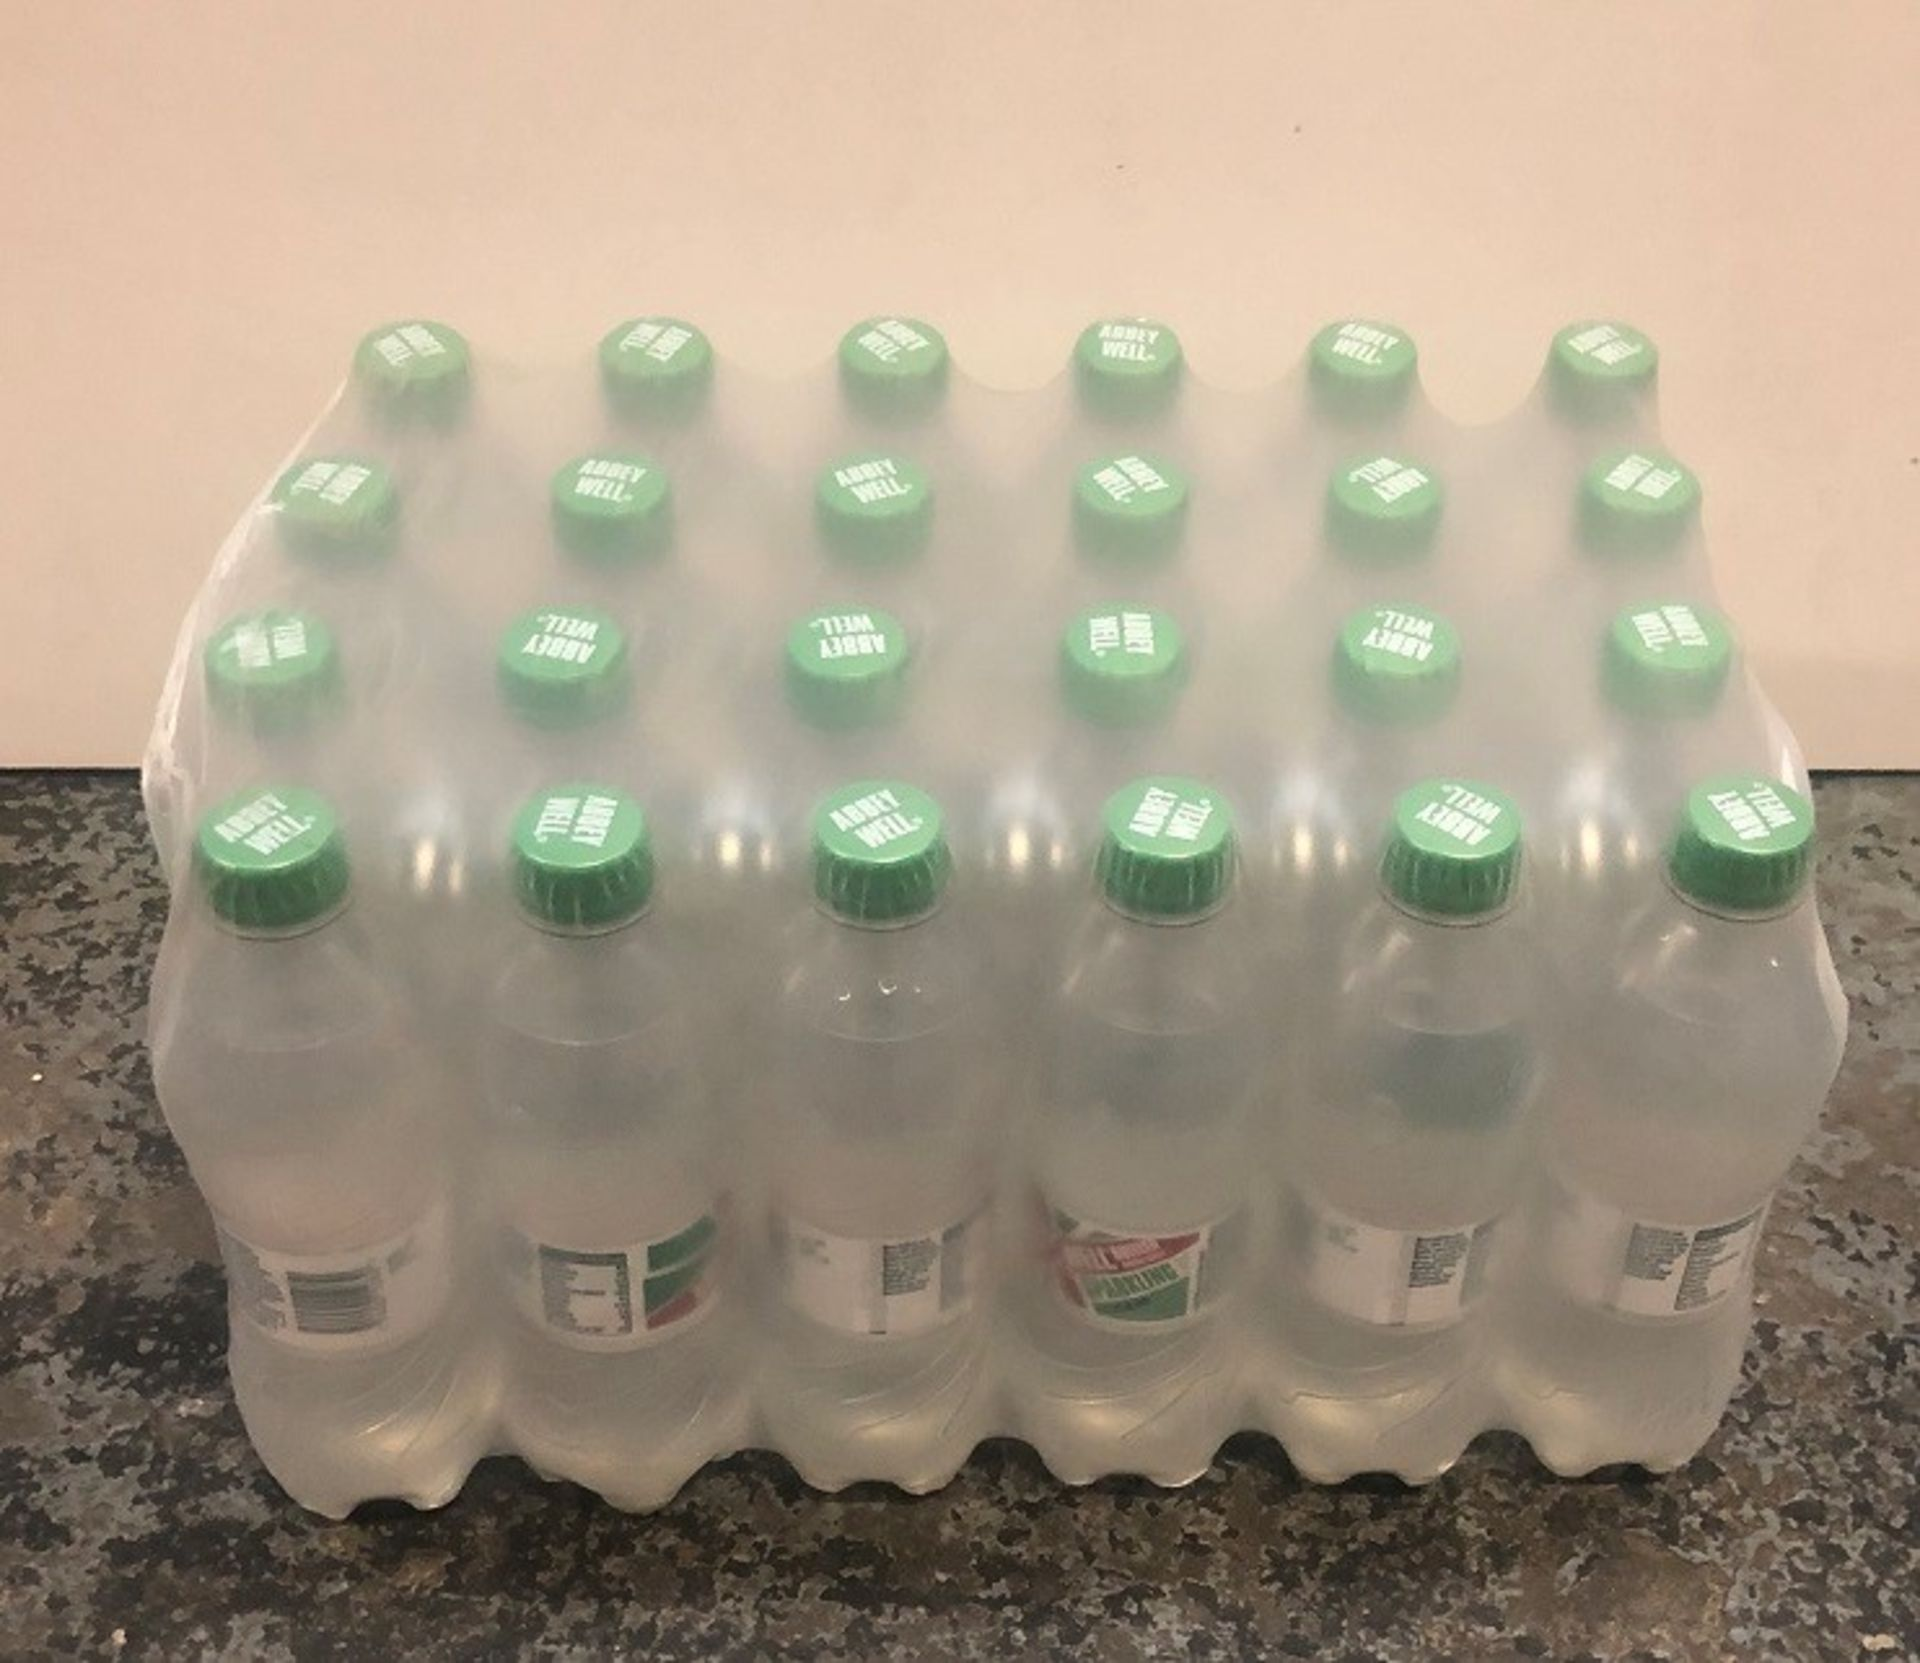 Lot 45 - 1 LOT TO CONTAIN 12 LARGE PACKS OF ABBEY WELL SPARKLING WATER / 24 BOTTLES PER PACK / BEST BEFORE: